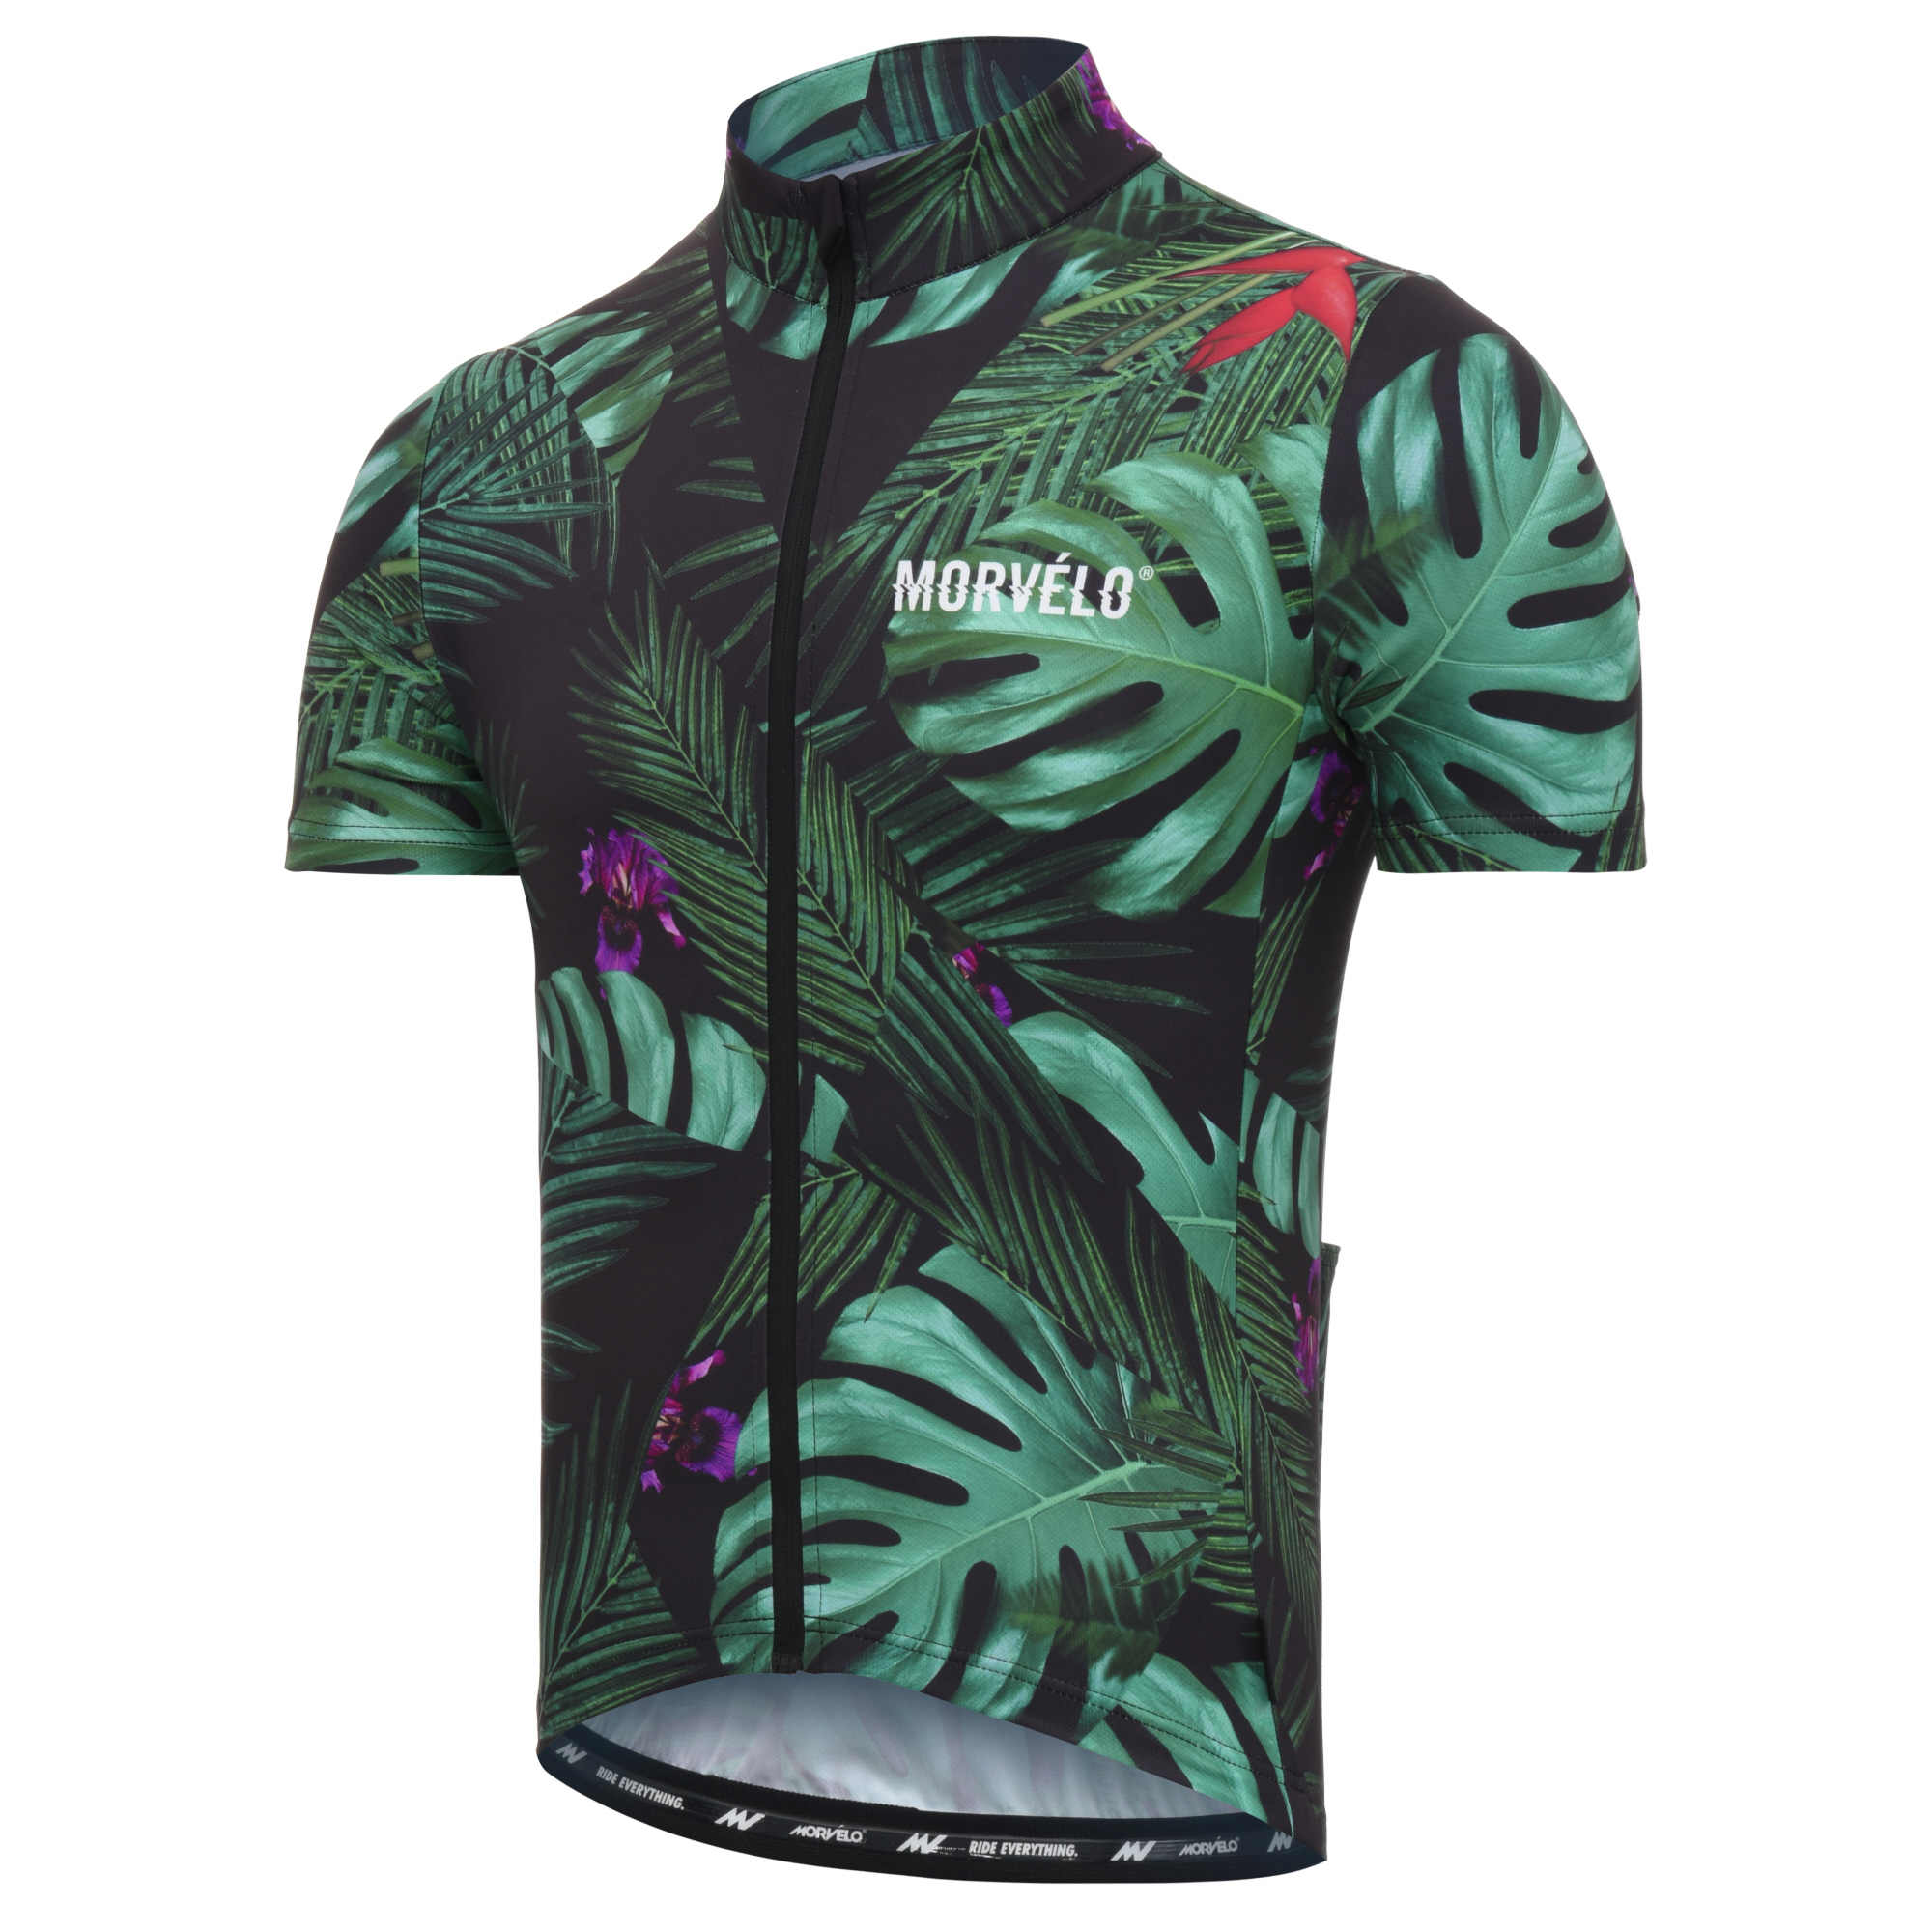 Morvelo Exclusive Standard Jungle Short Sleeve Jersey | Jerseys